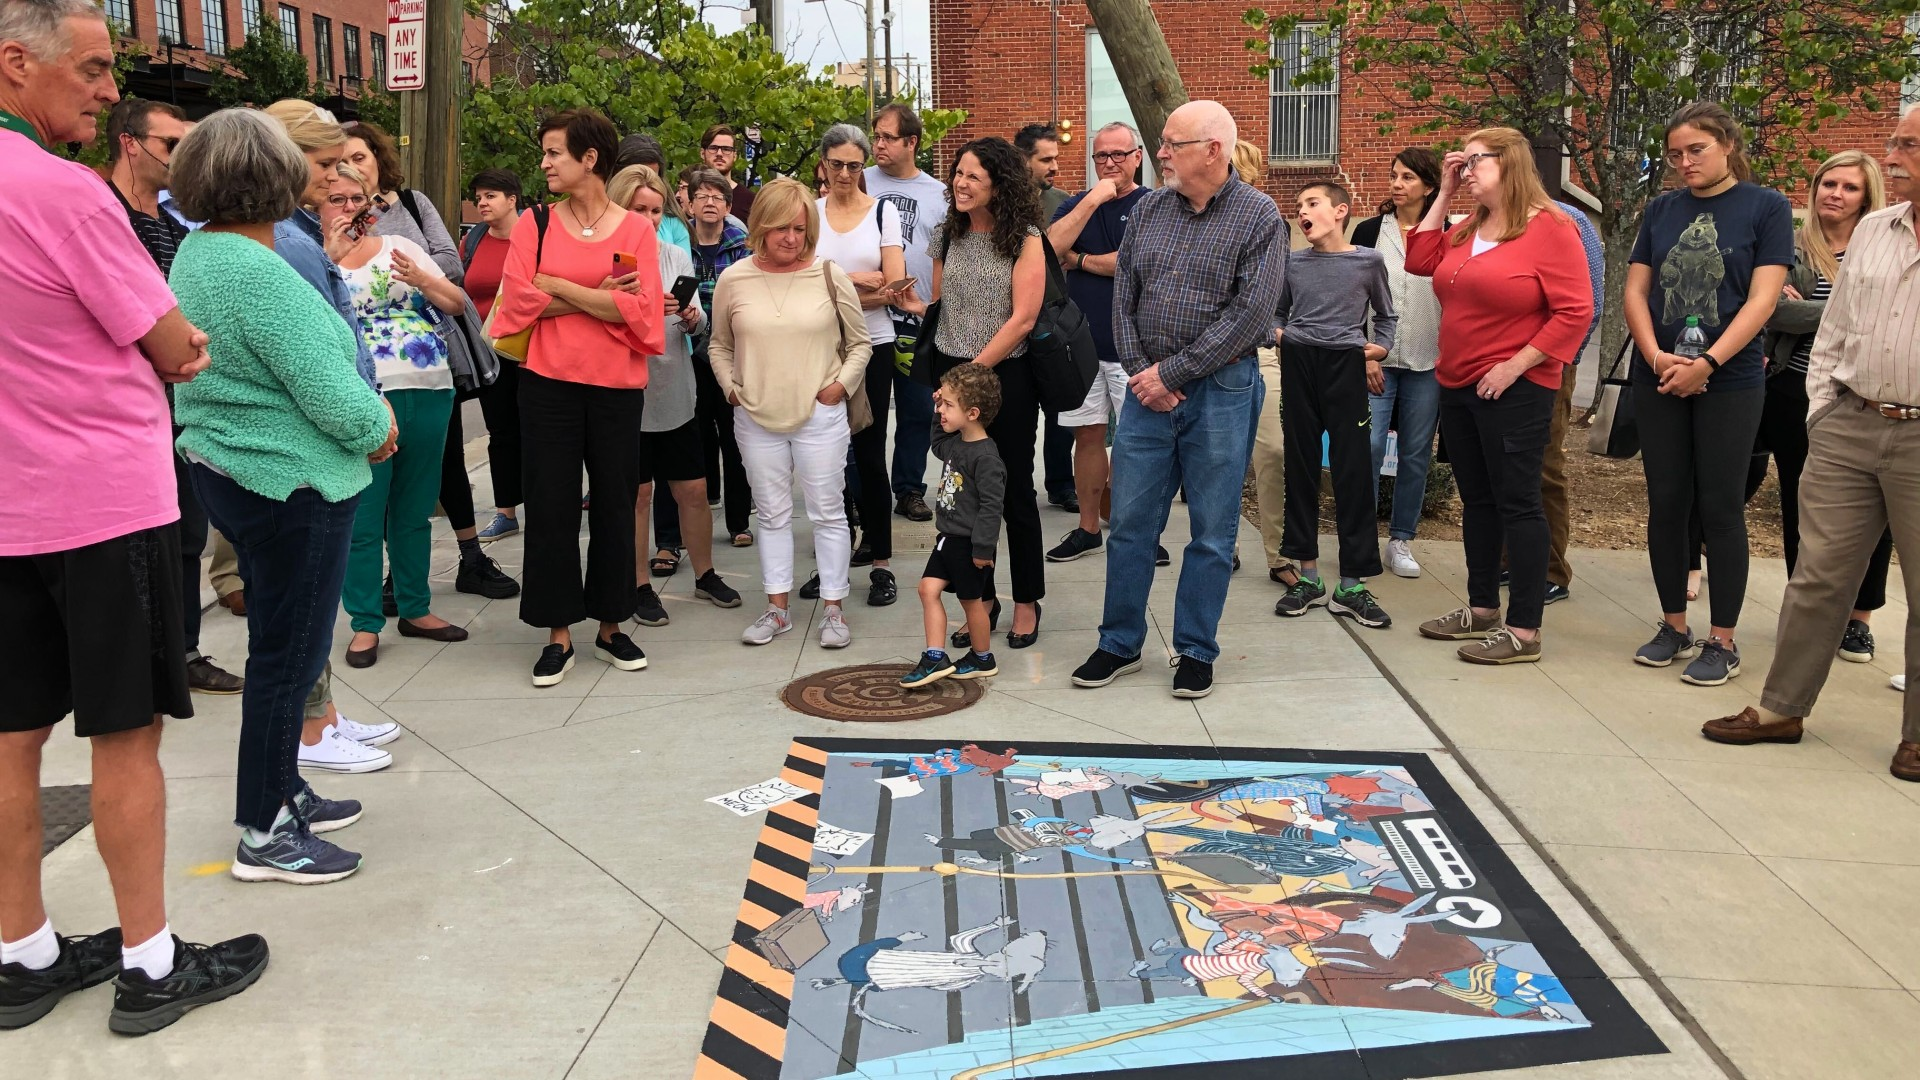 crowd viewing a sidewalk mural during downtown alliance artwalk